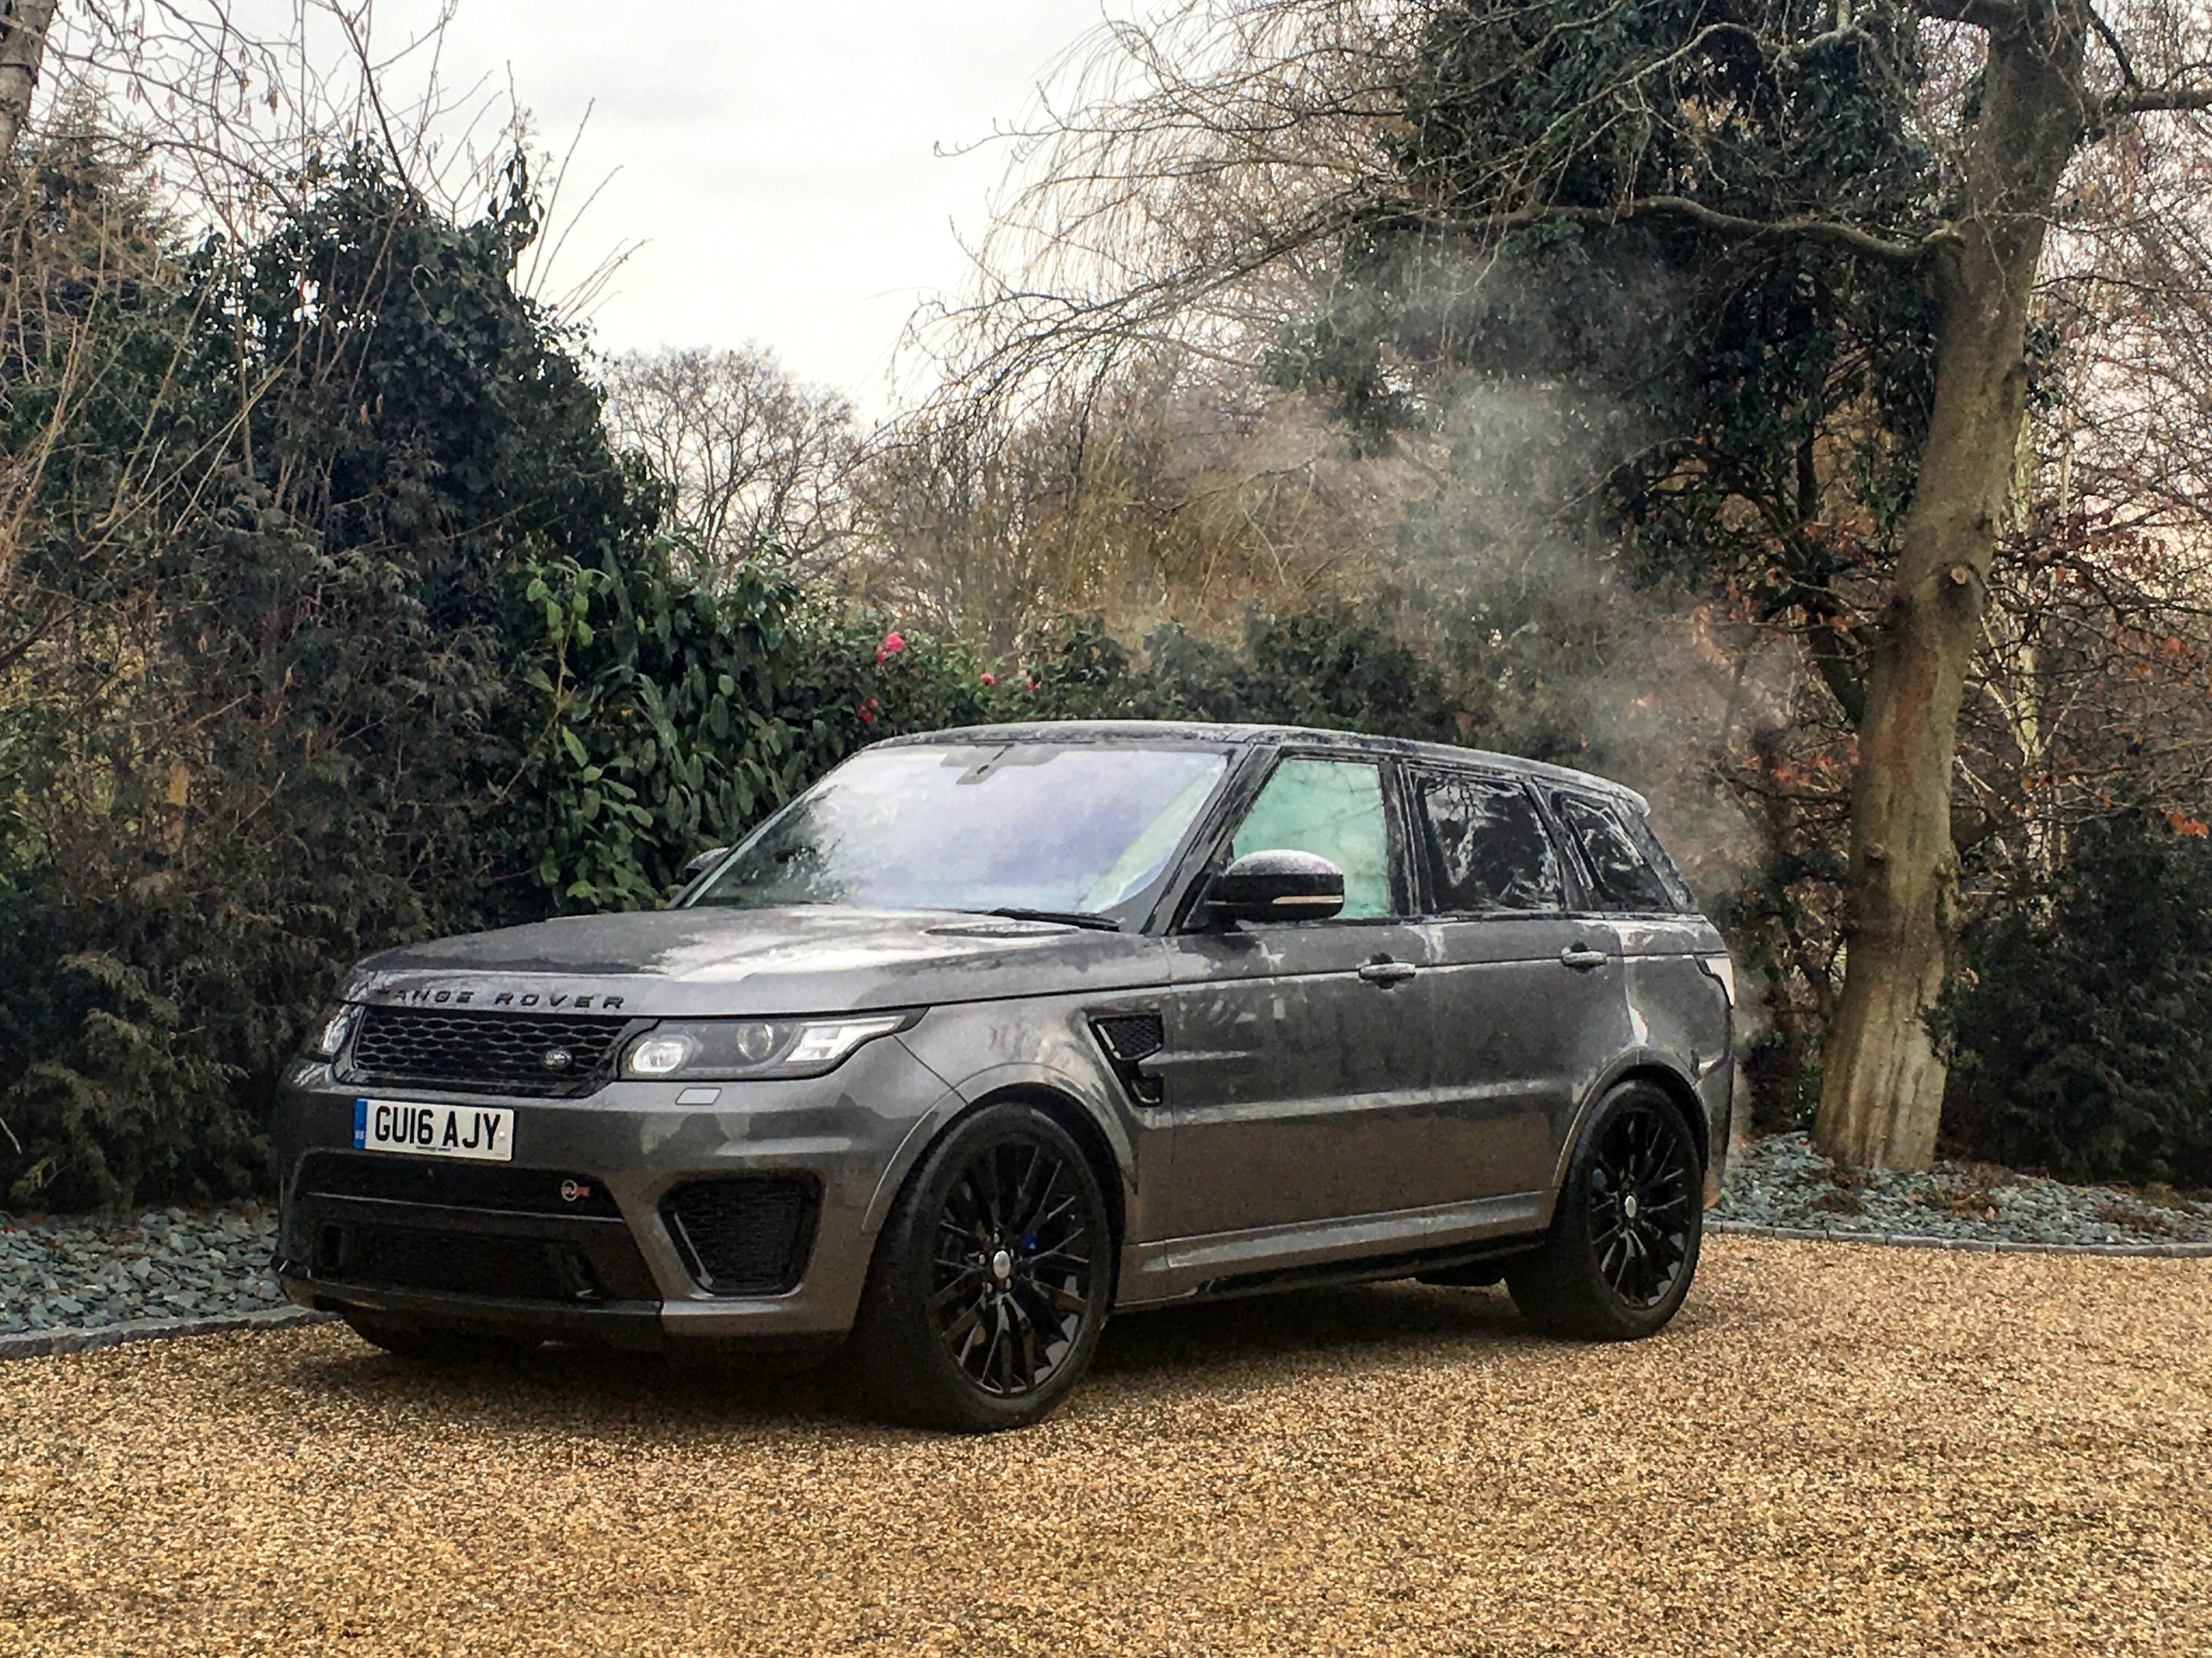 A frosty start to the day with our new Range Rover Sport ...